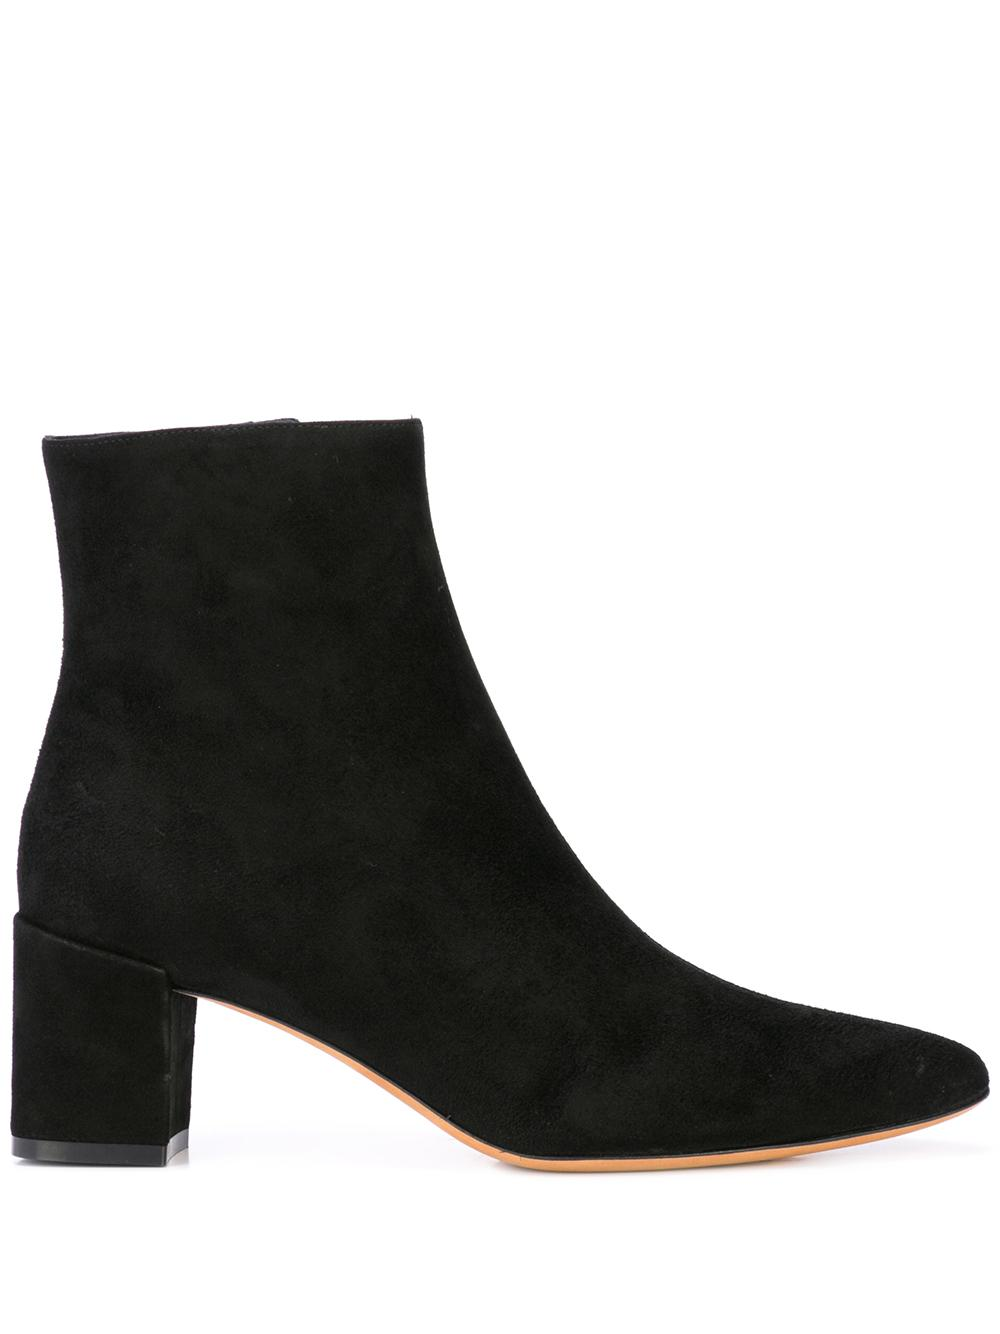 Suede Leather Bootie With Block Heel